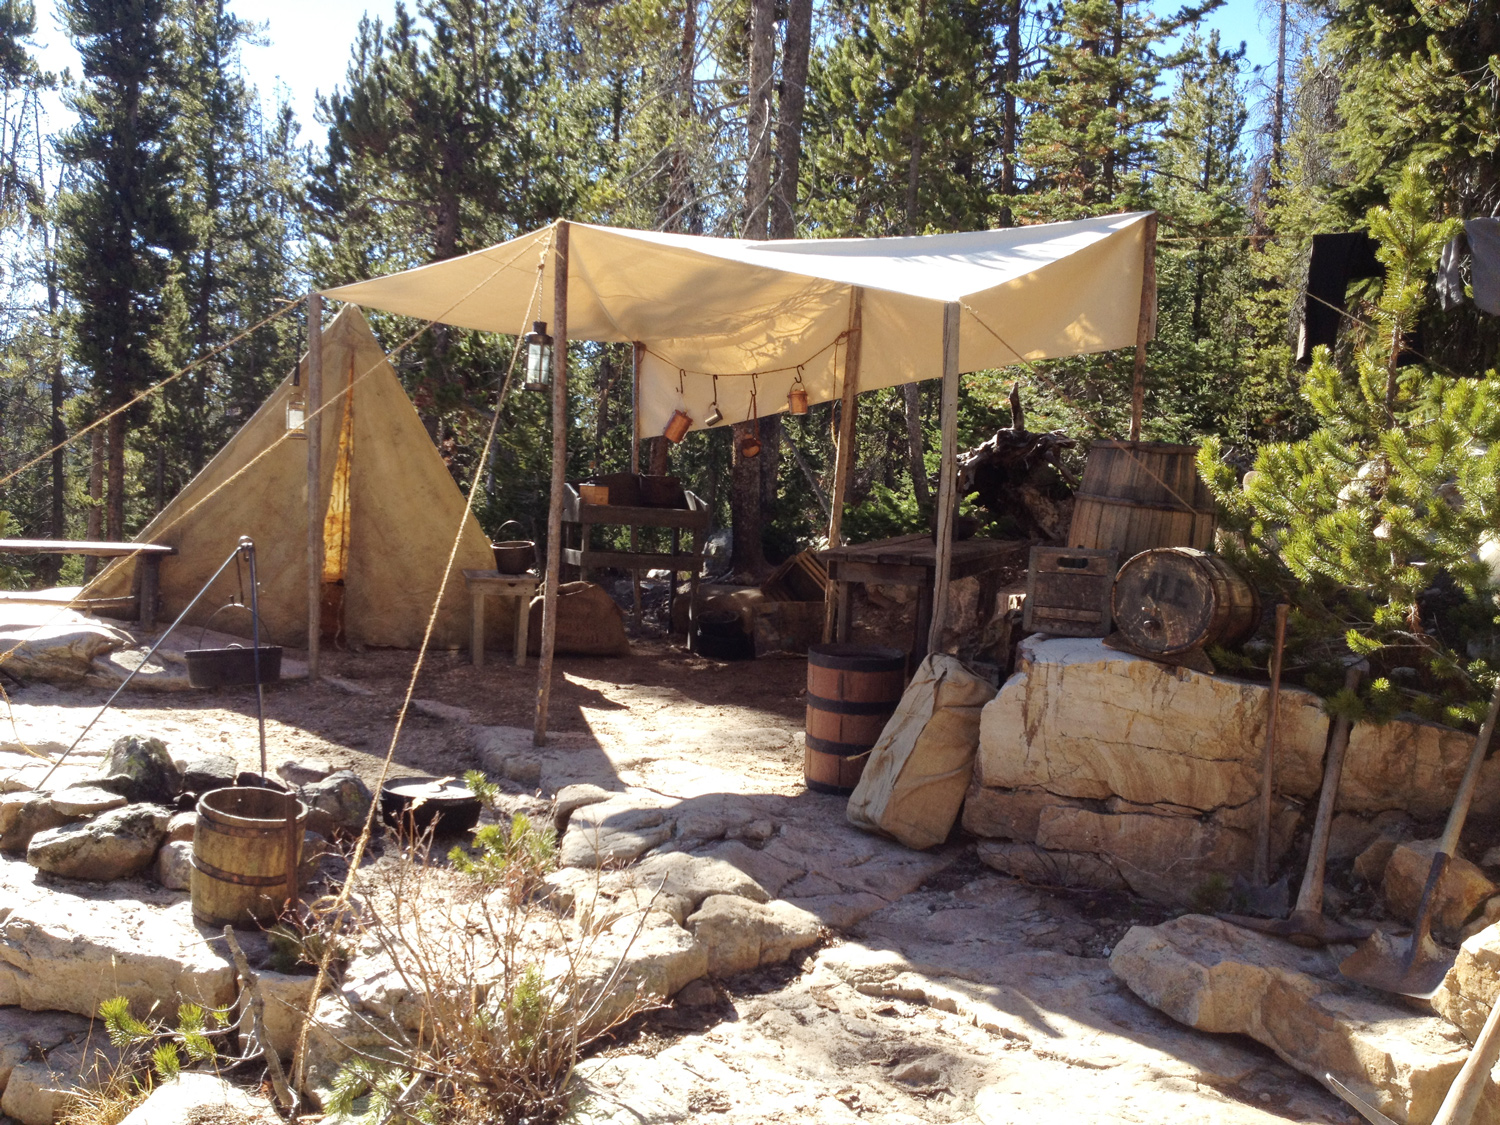 A fine example of the dozens and dozens of encampments we built all over northern Utah.